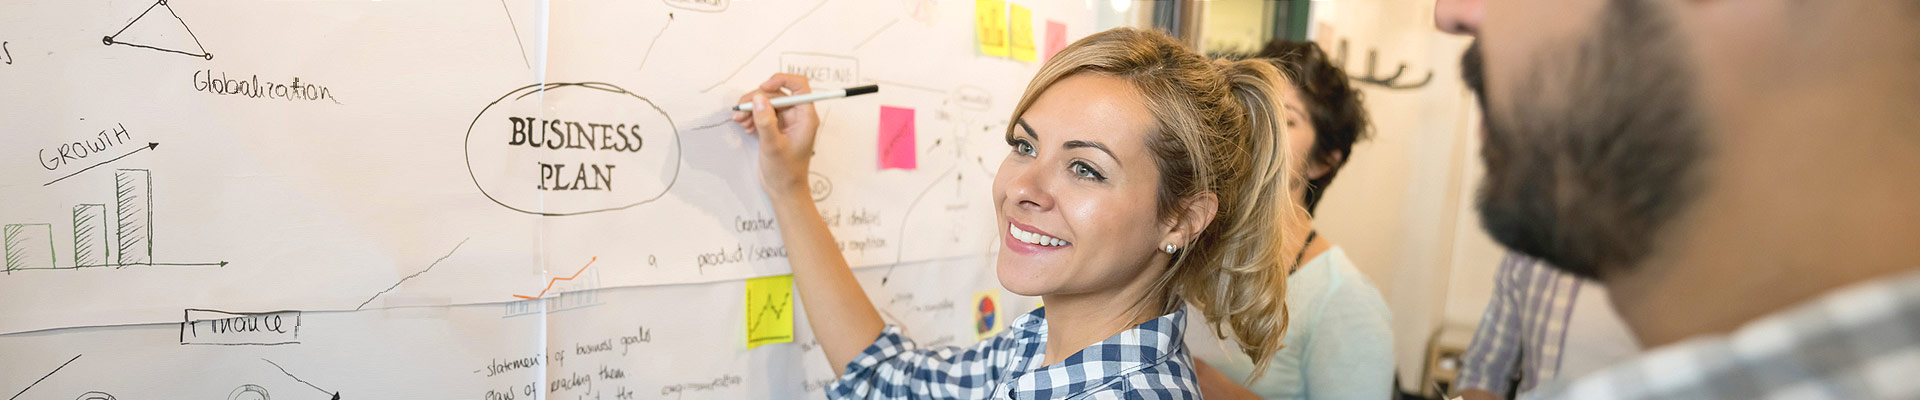 A woman creates a business plan on a metaplan wall.